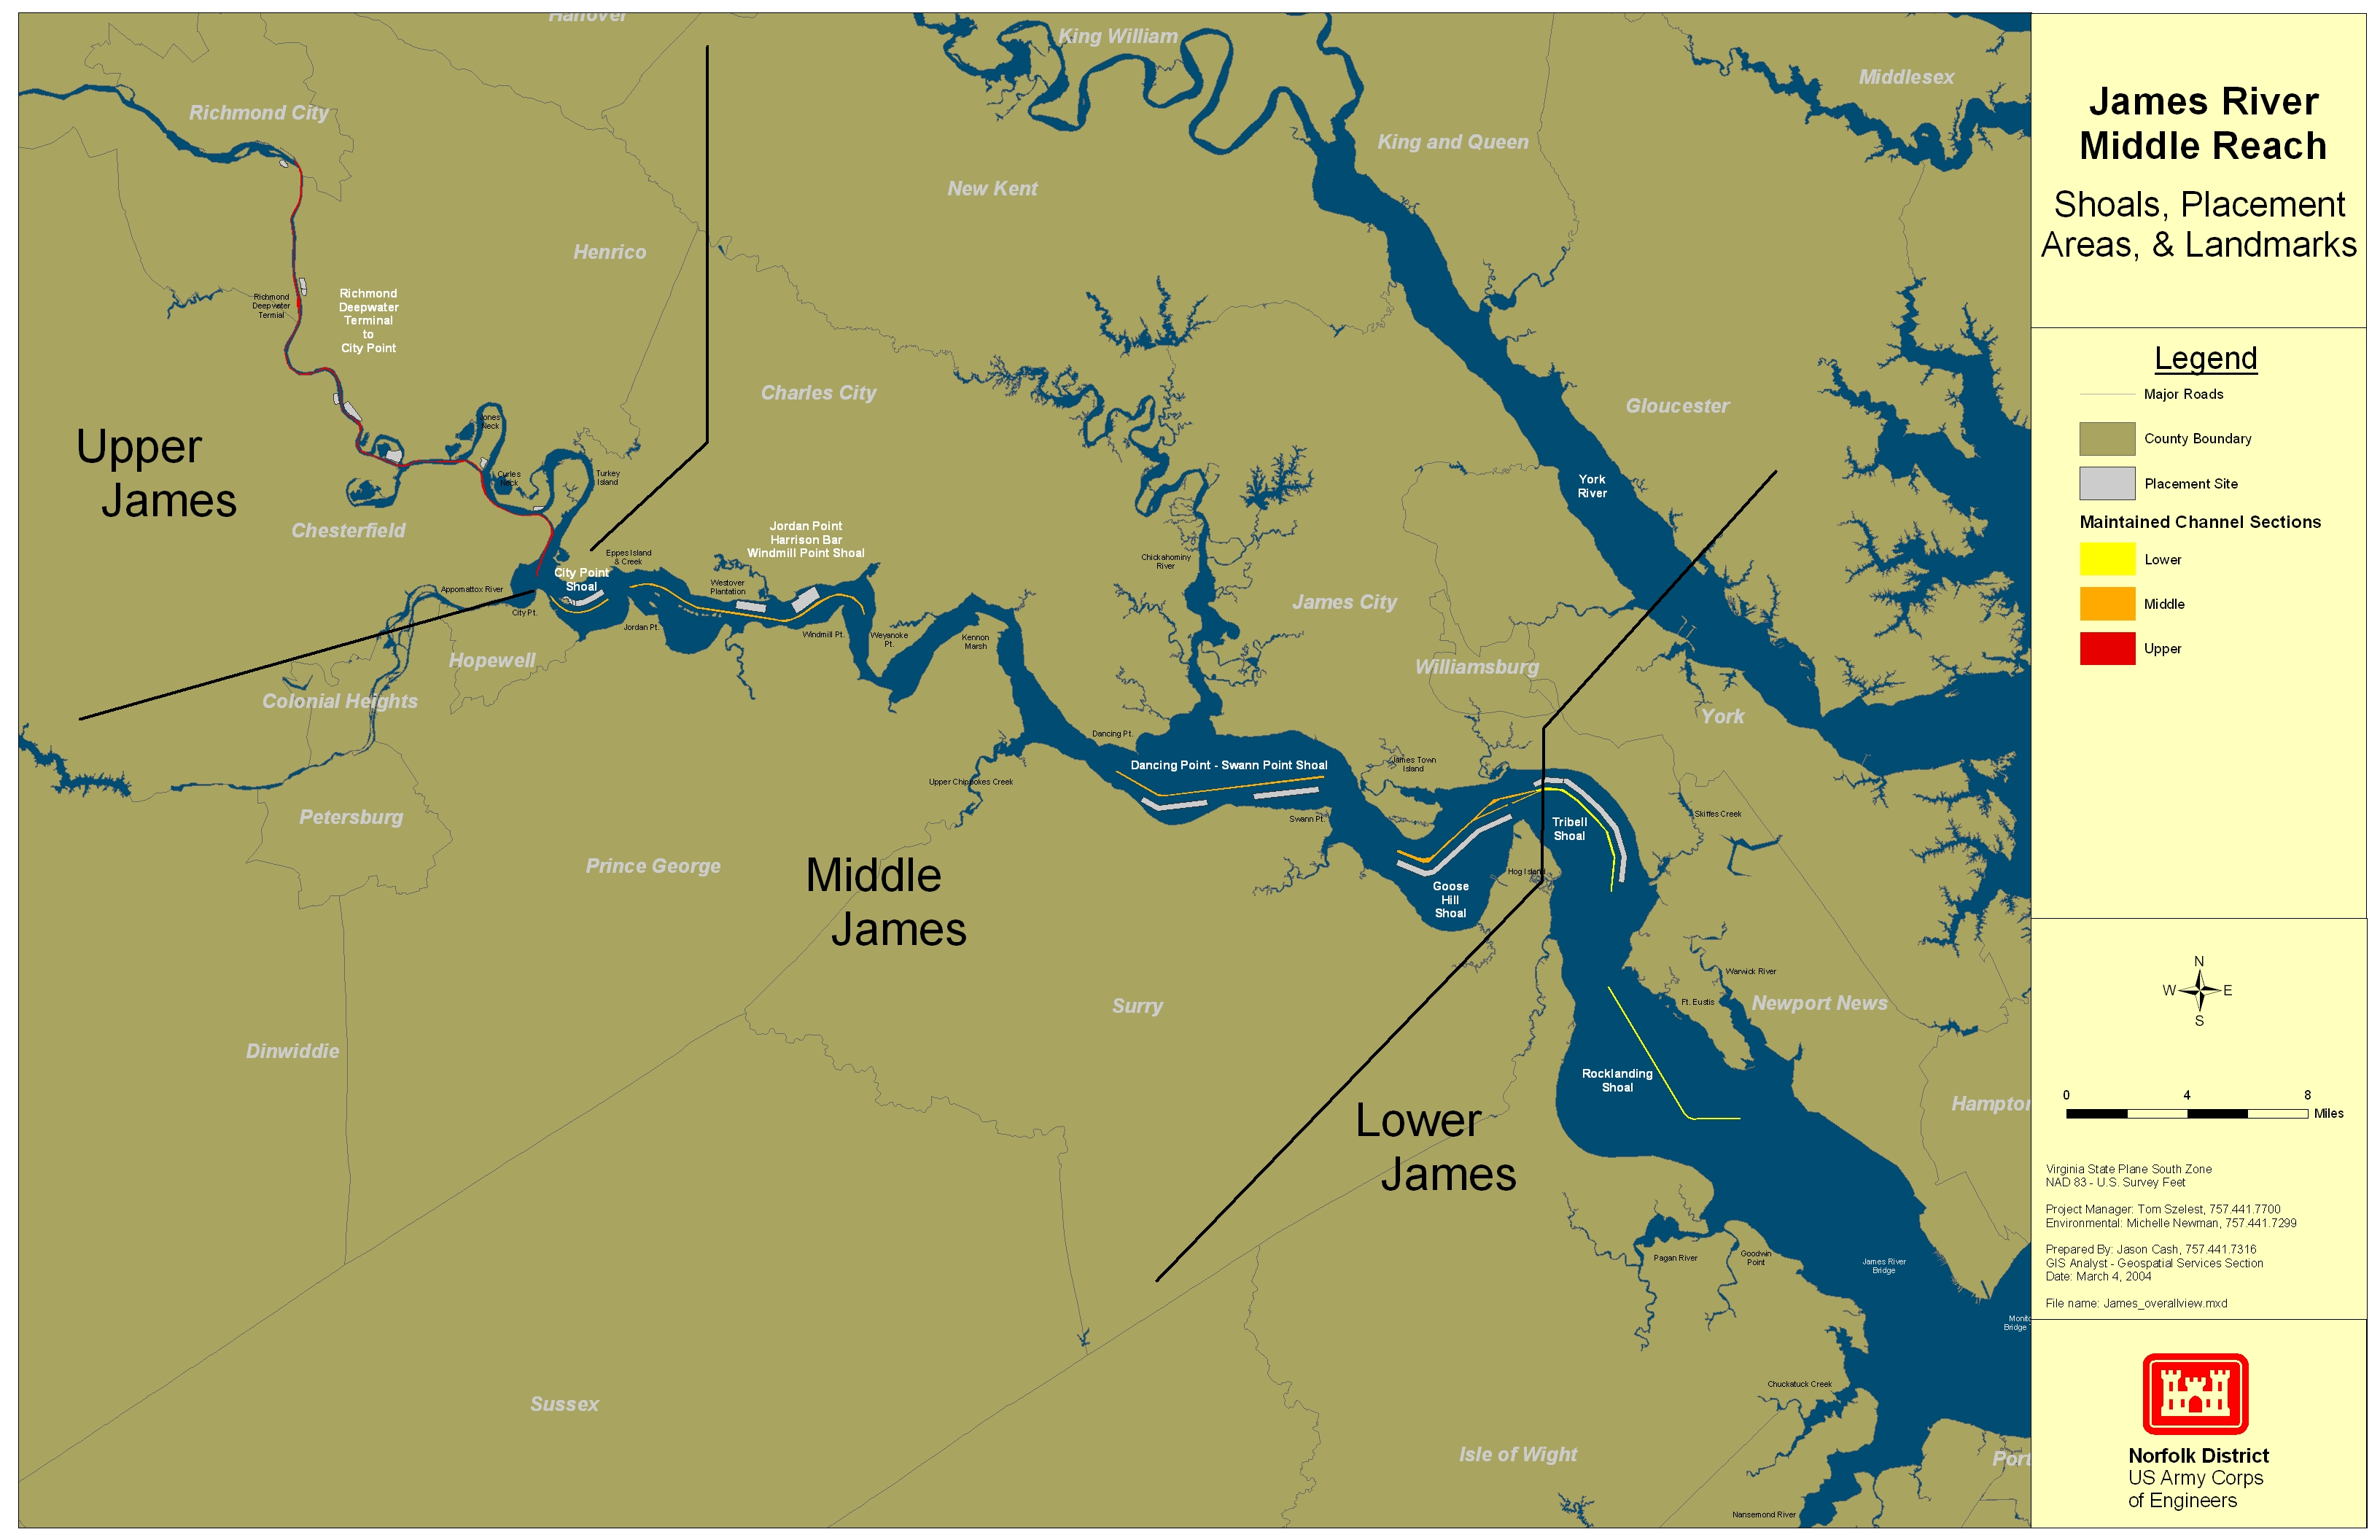 A map of the James River Channel showing the lower, middle and upper reaches.